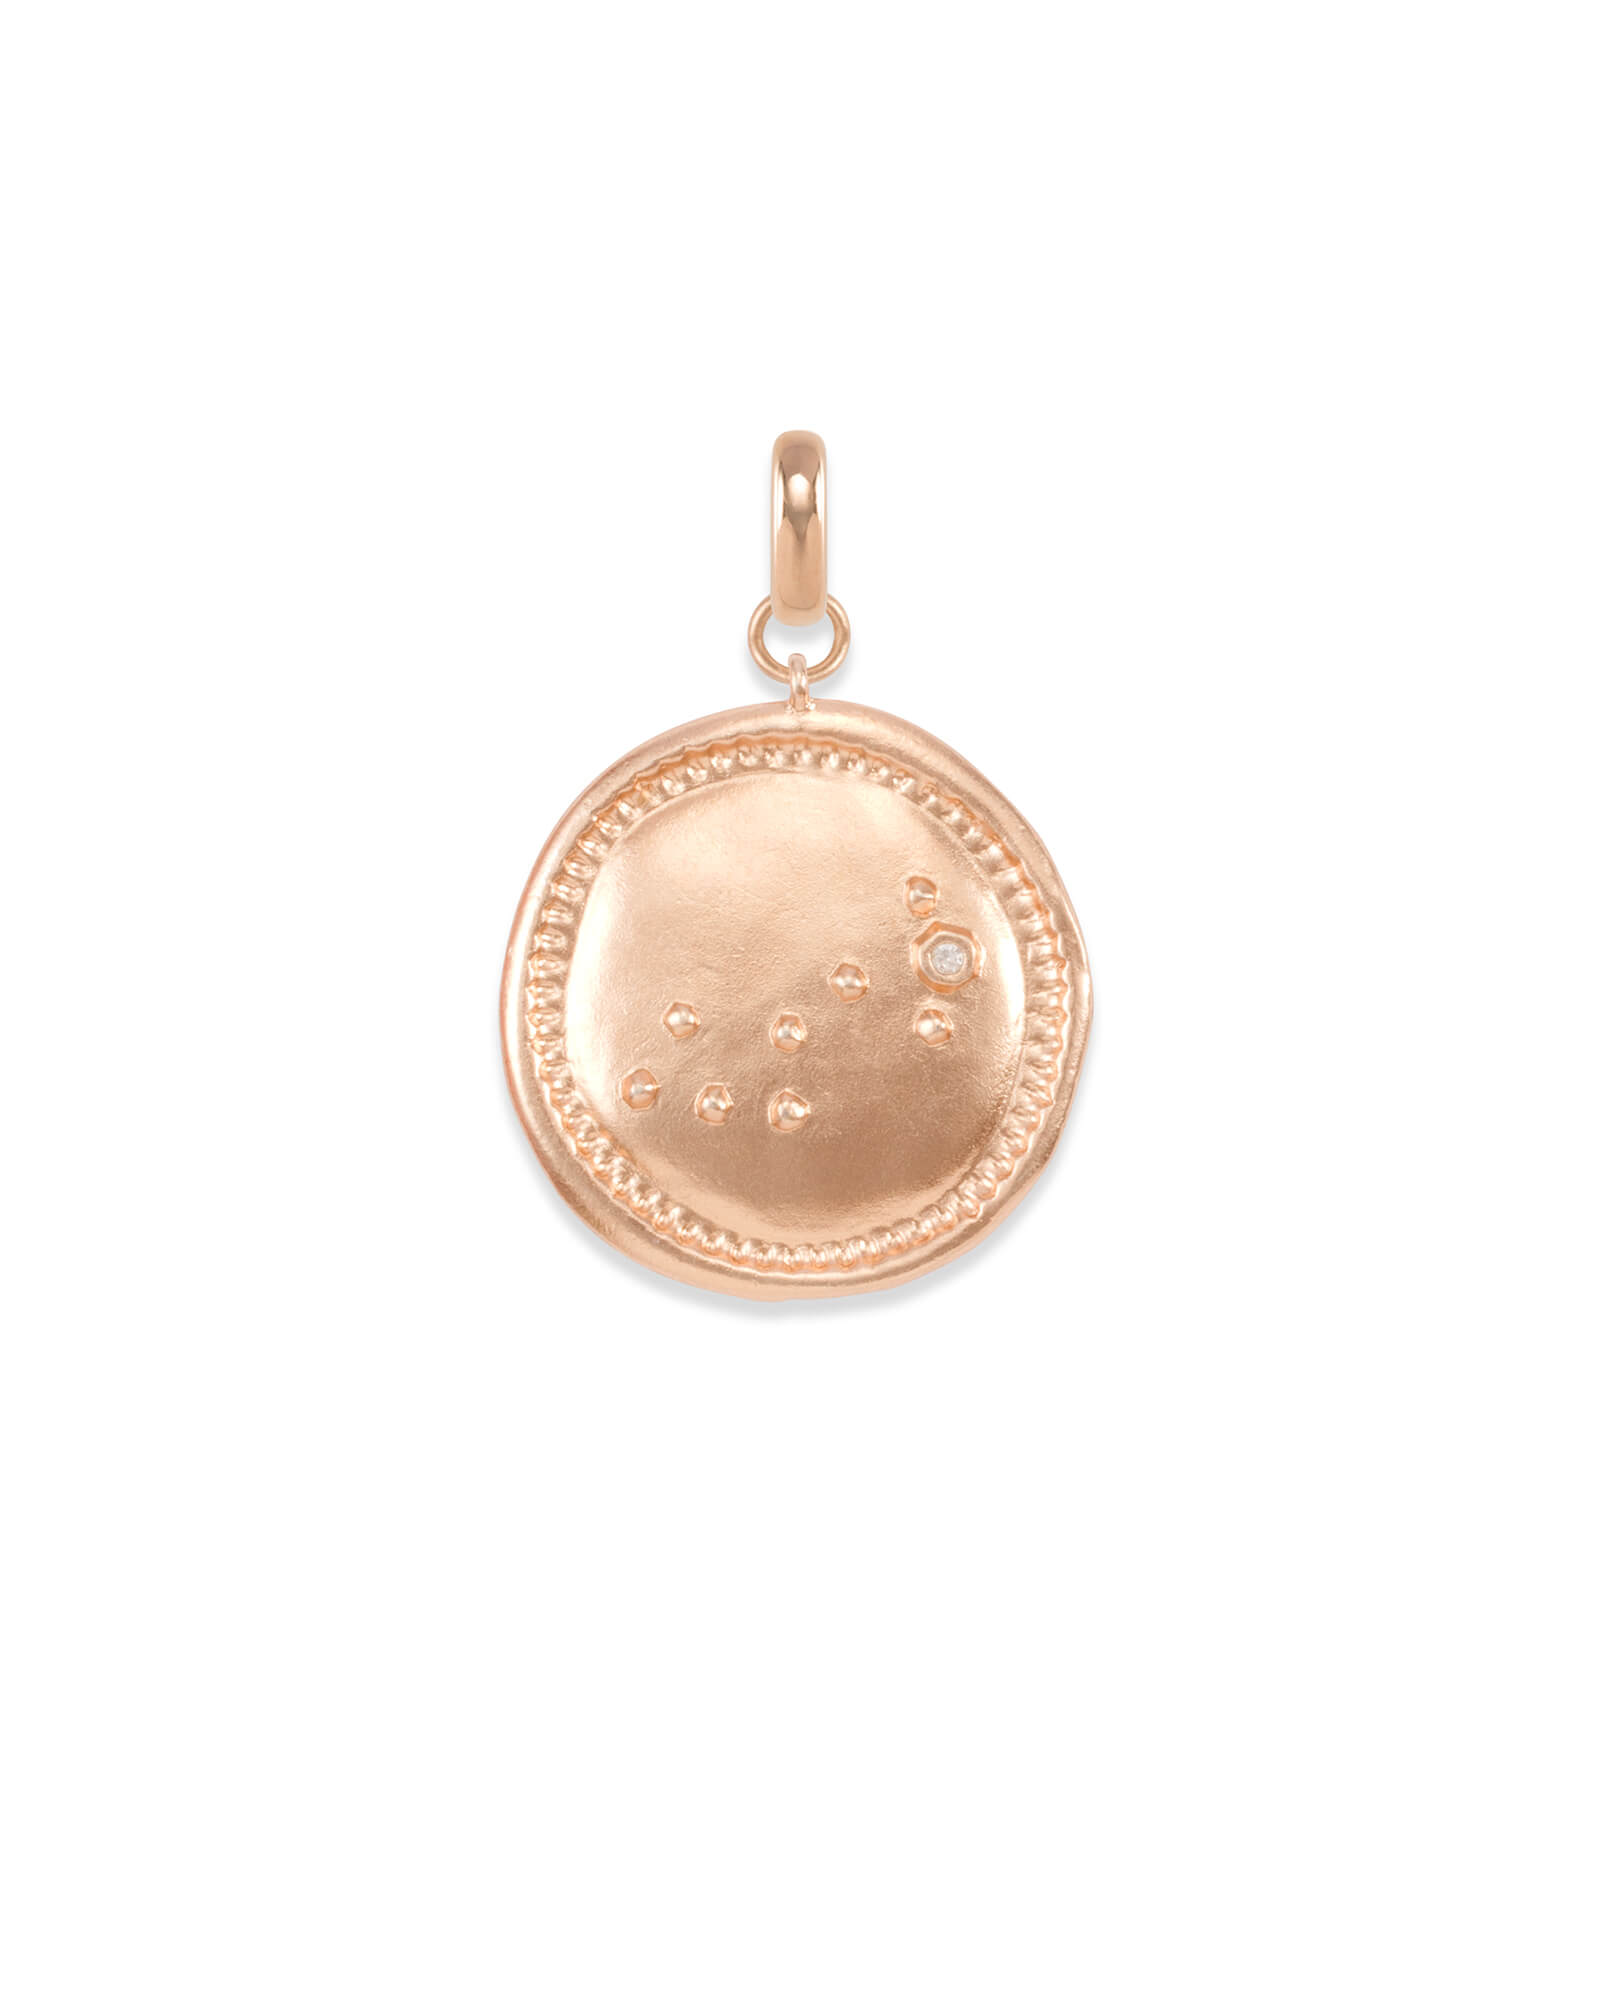 Scorpio Coin Charm in Rose Gold